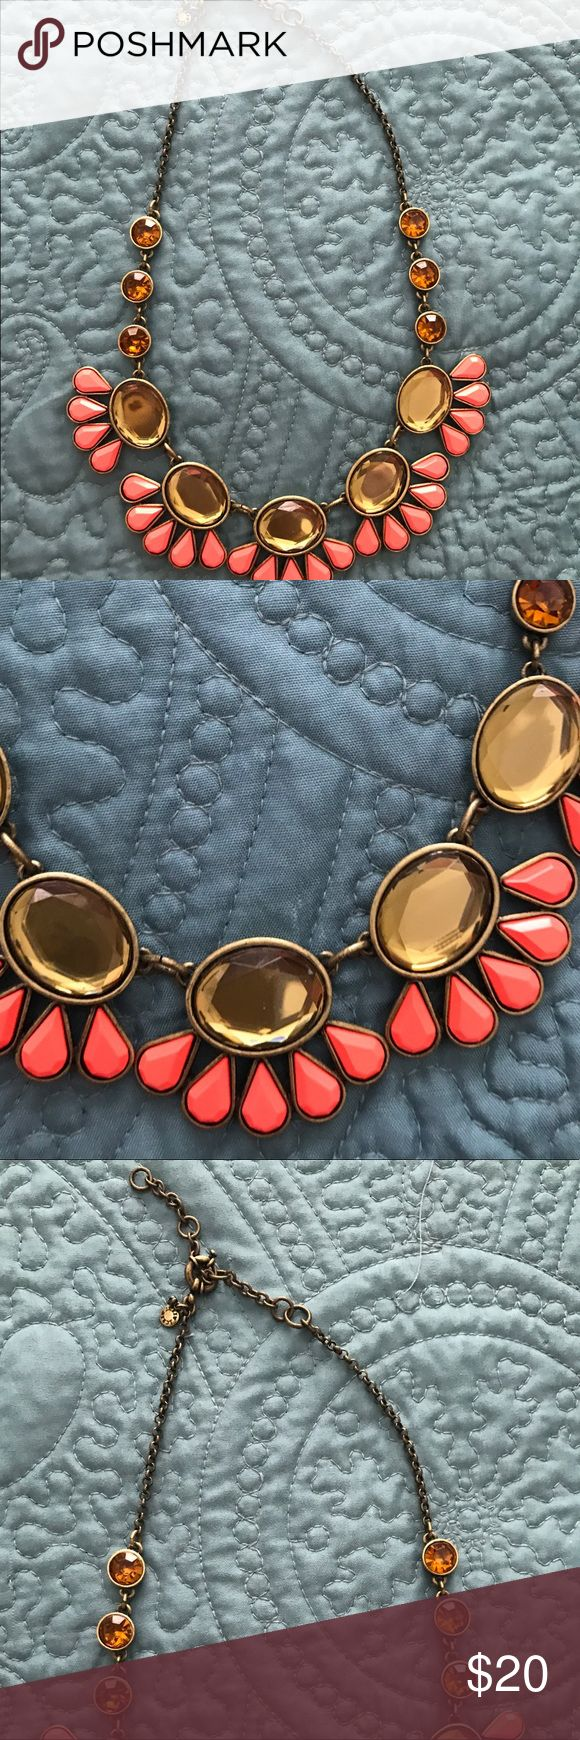 J crew statement necklace J Crew orange and Gold statement necklace j crew Jewelry Necklaces